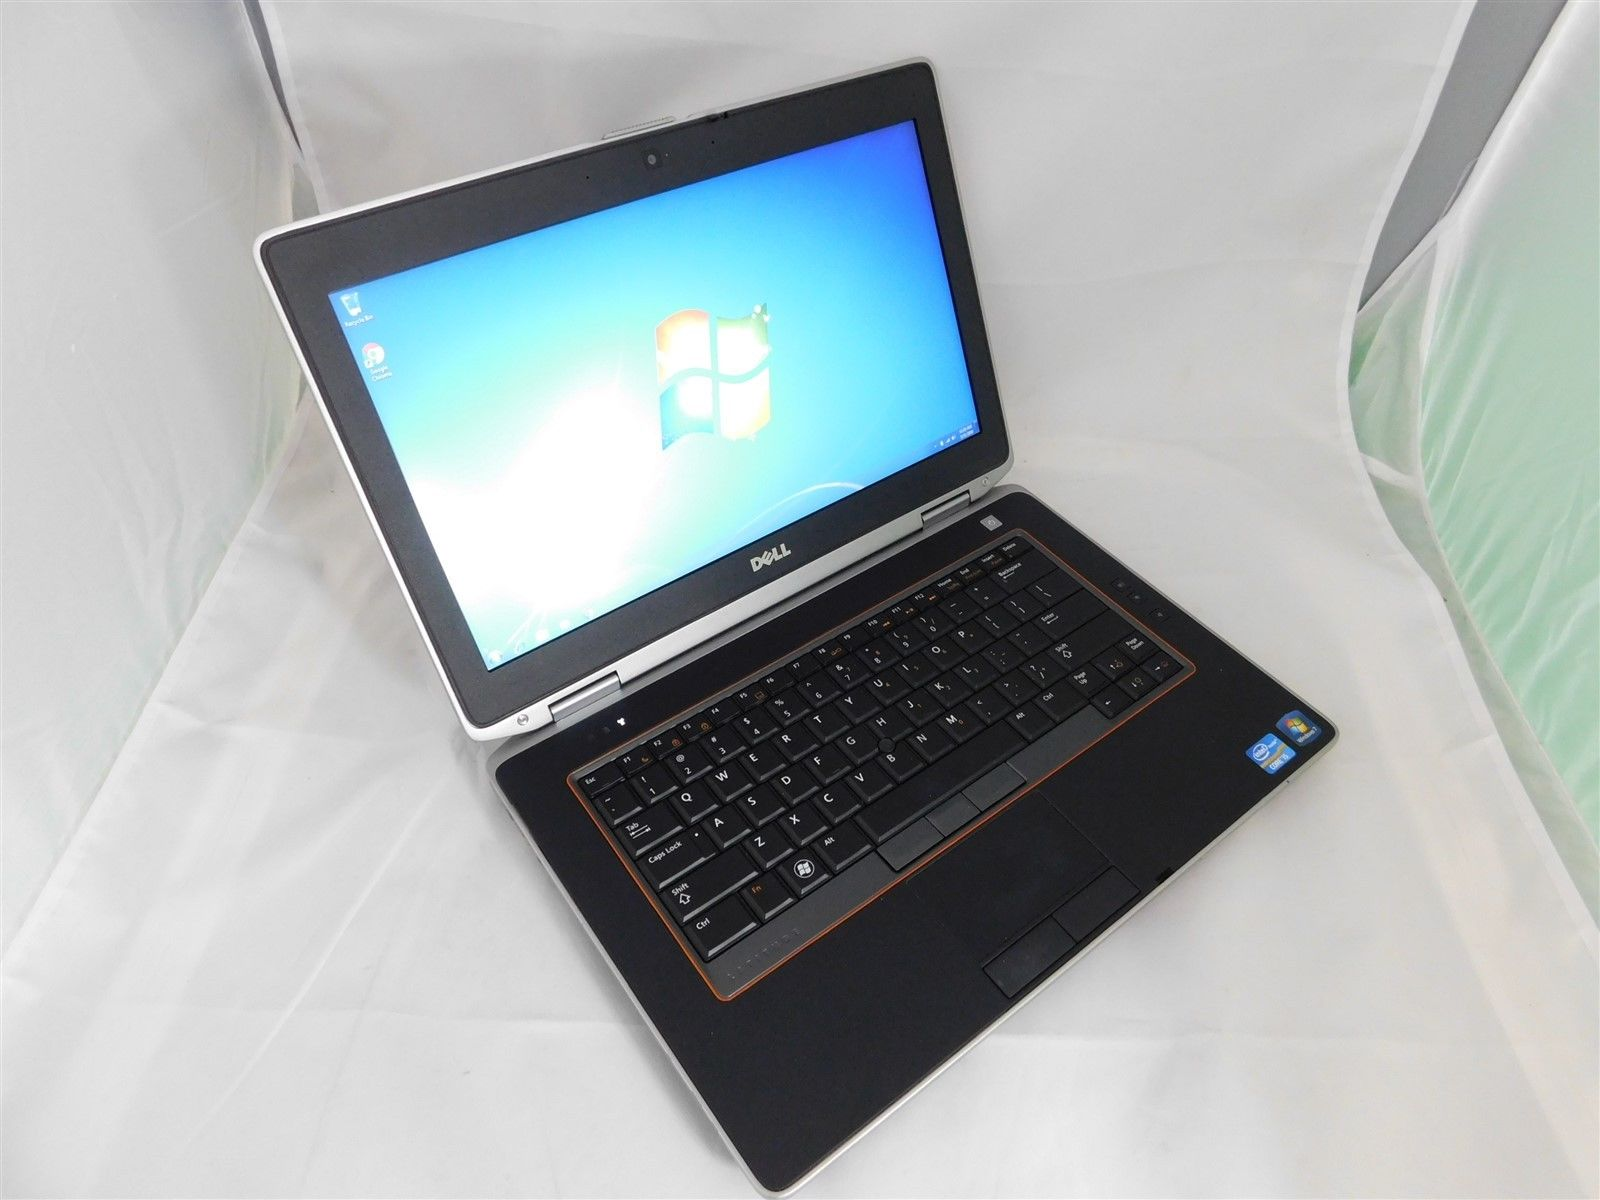 Dell latitude e6420 core i5 2520m 160gb hdd 4gb for 14 inch window